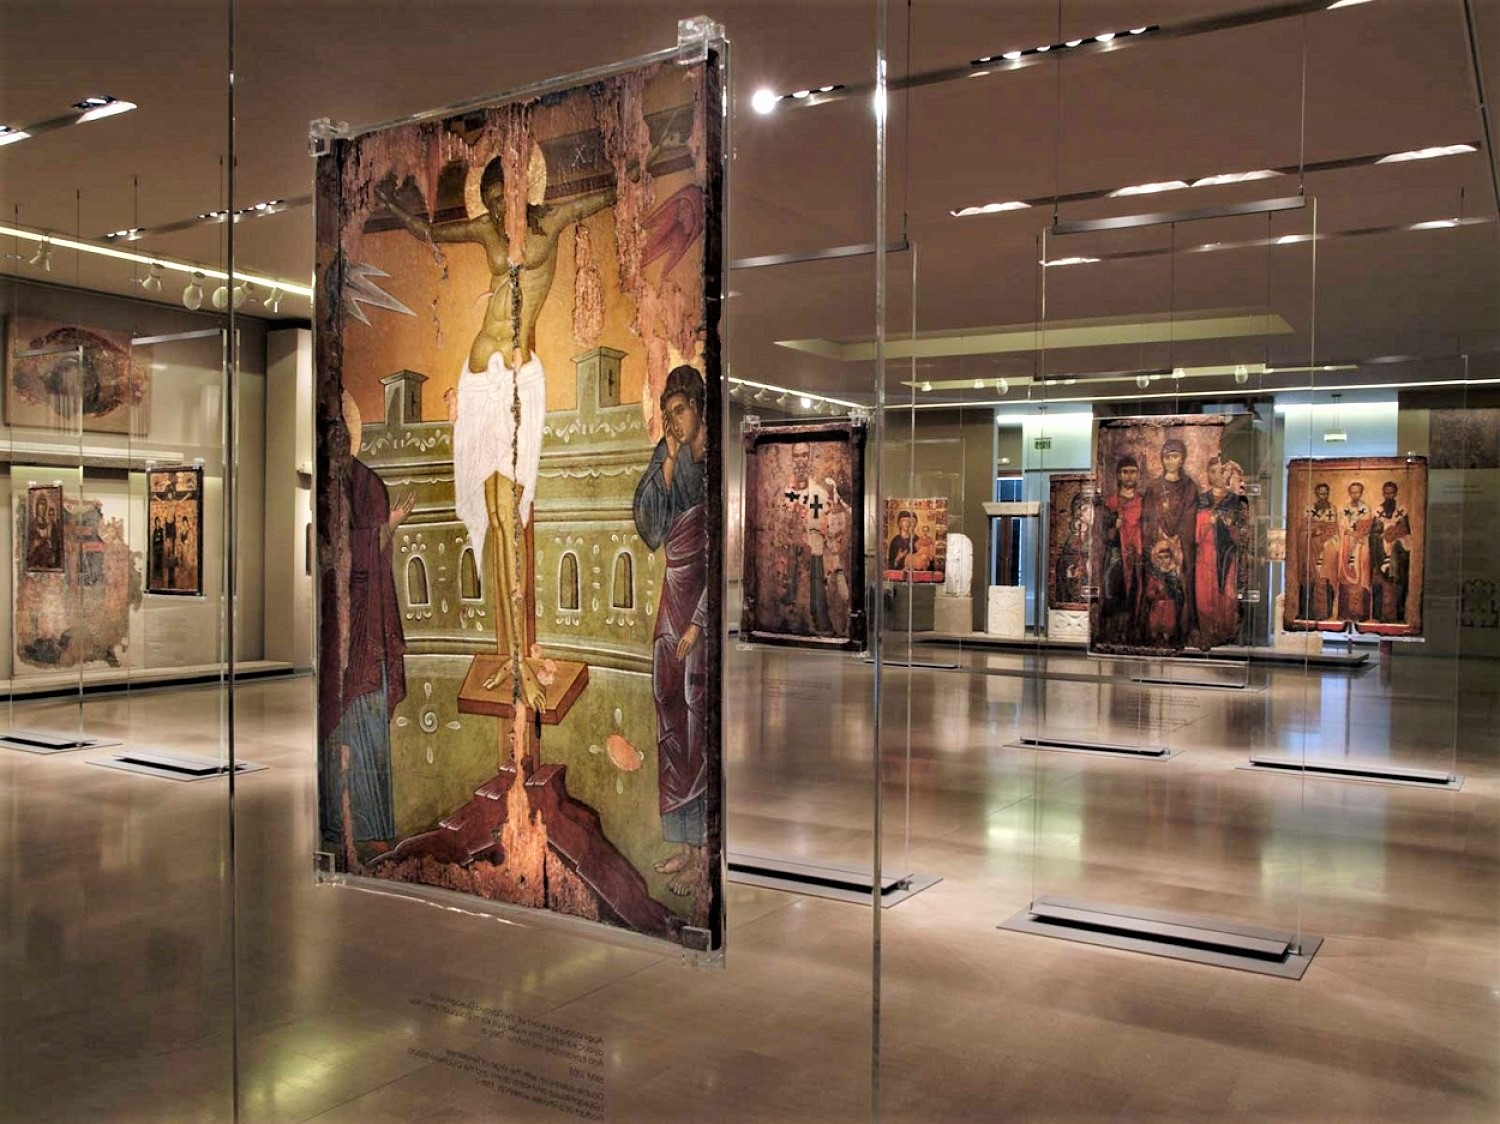 More than than 25,000 exhibits, including rare pictures, sculptures, mosaics, frescoes and copies of artifacts dating from the 3rd century AD to the late medieval period and post-Byzantine times can be found in the Byzantine and Christian Museum of Athens.